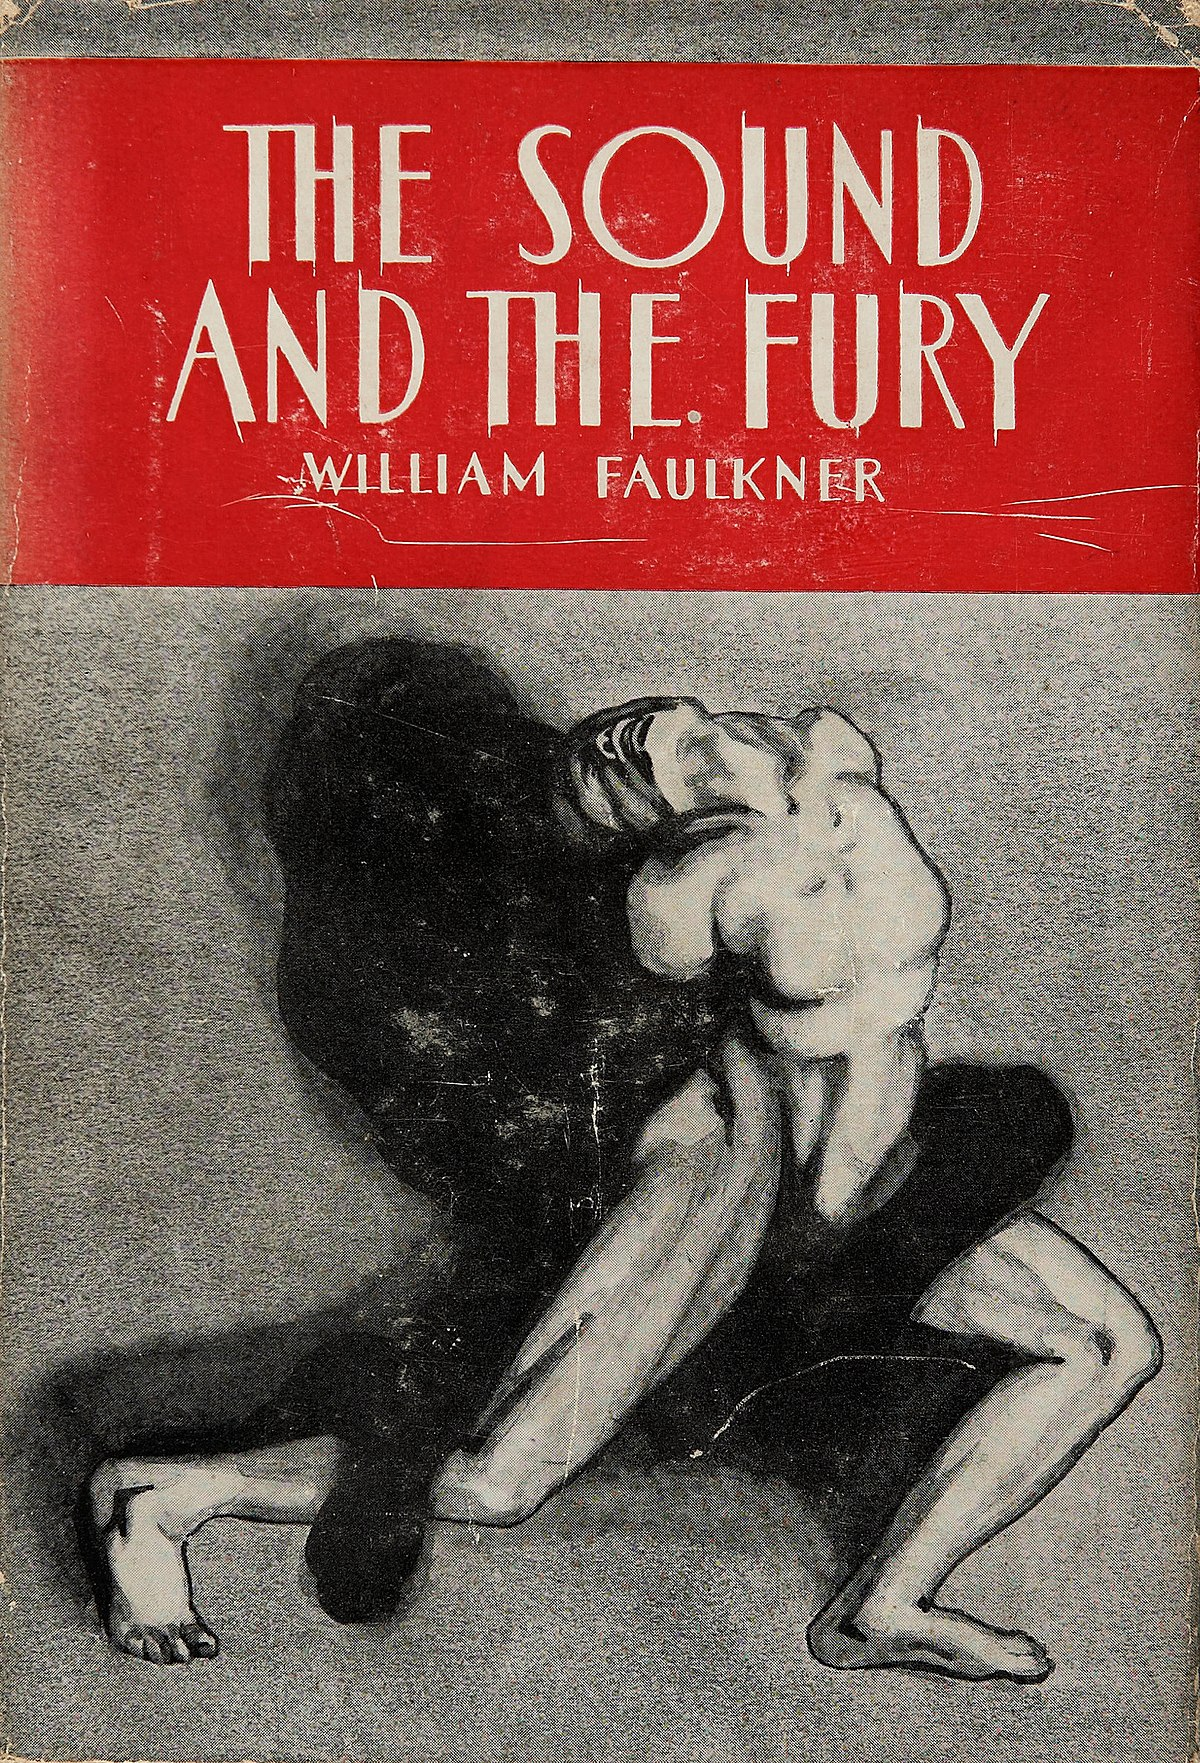 The Sound and the Fury - Wikipedia